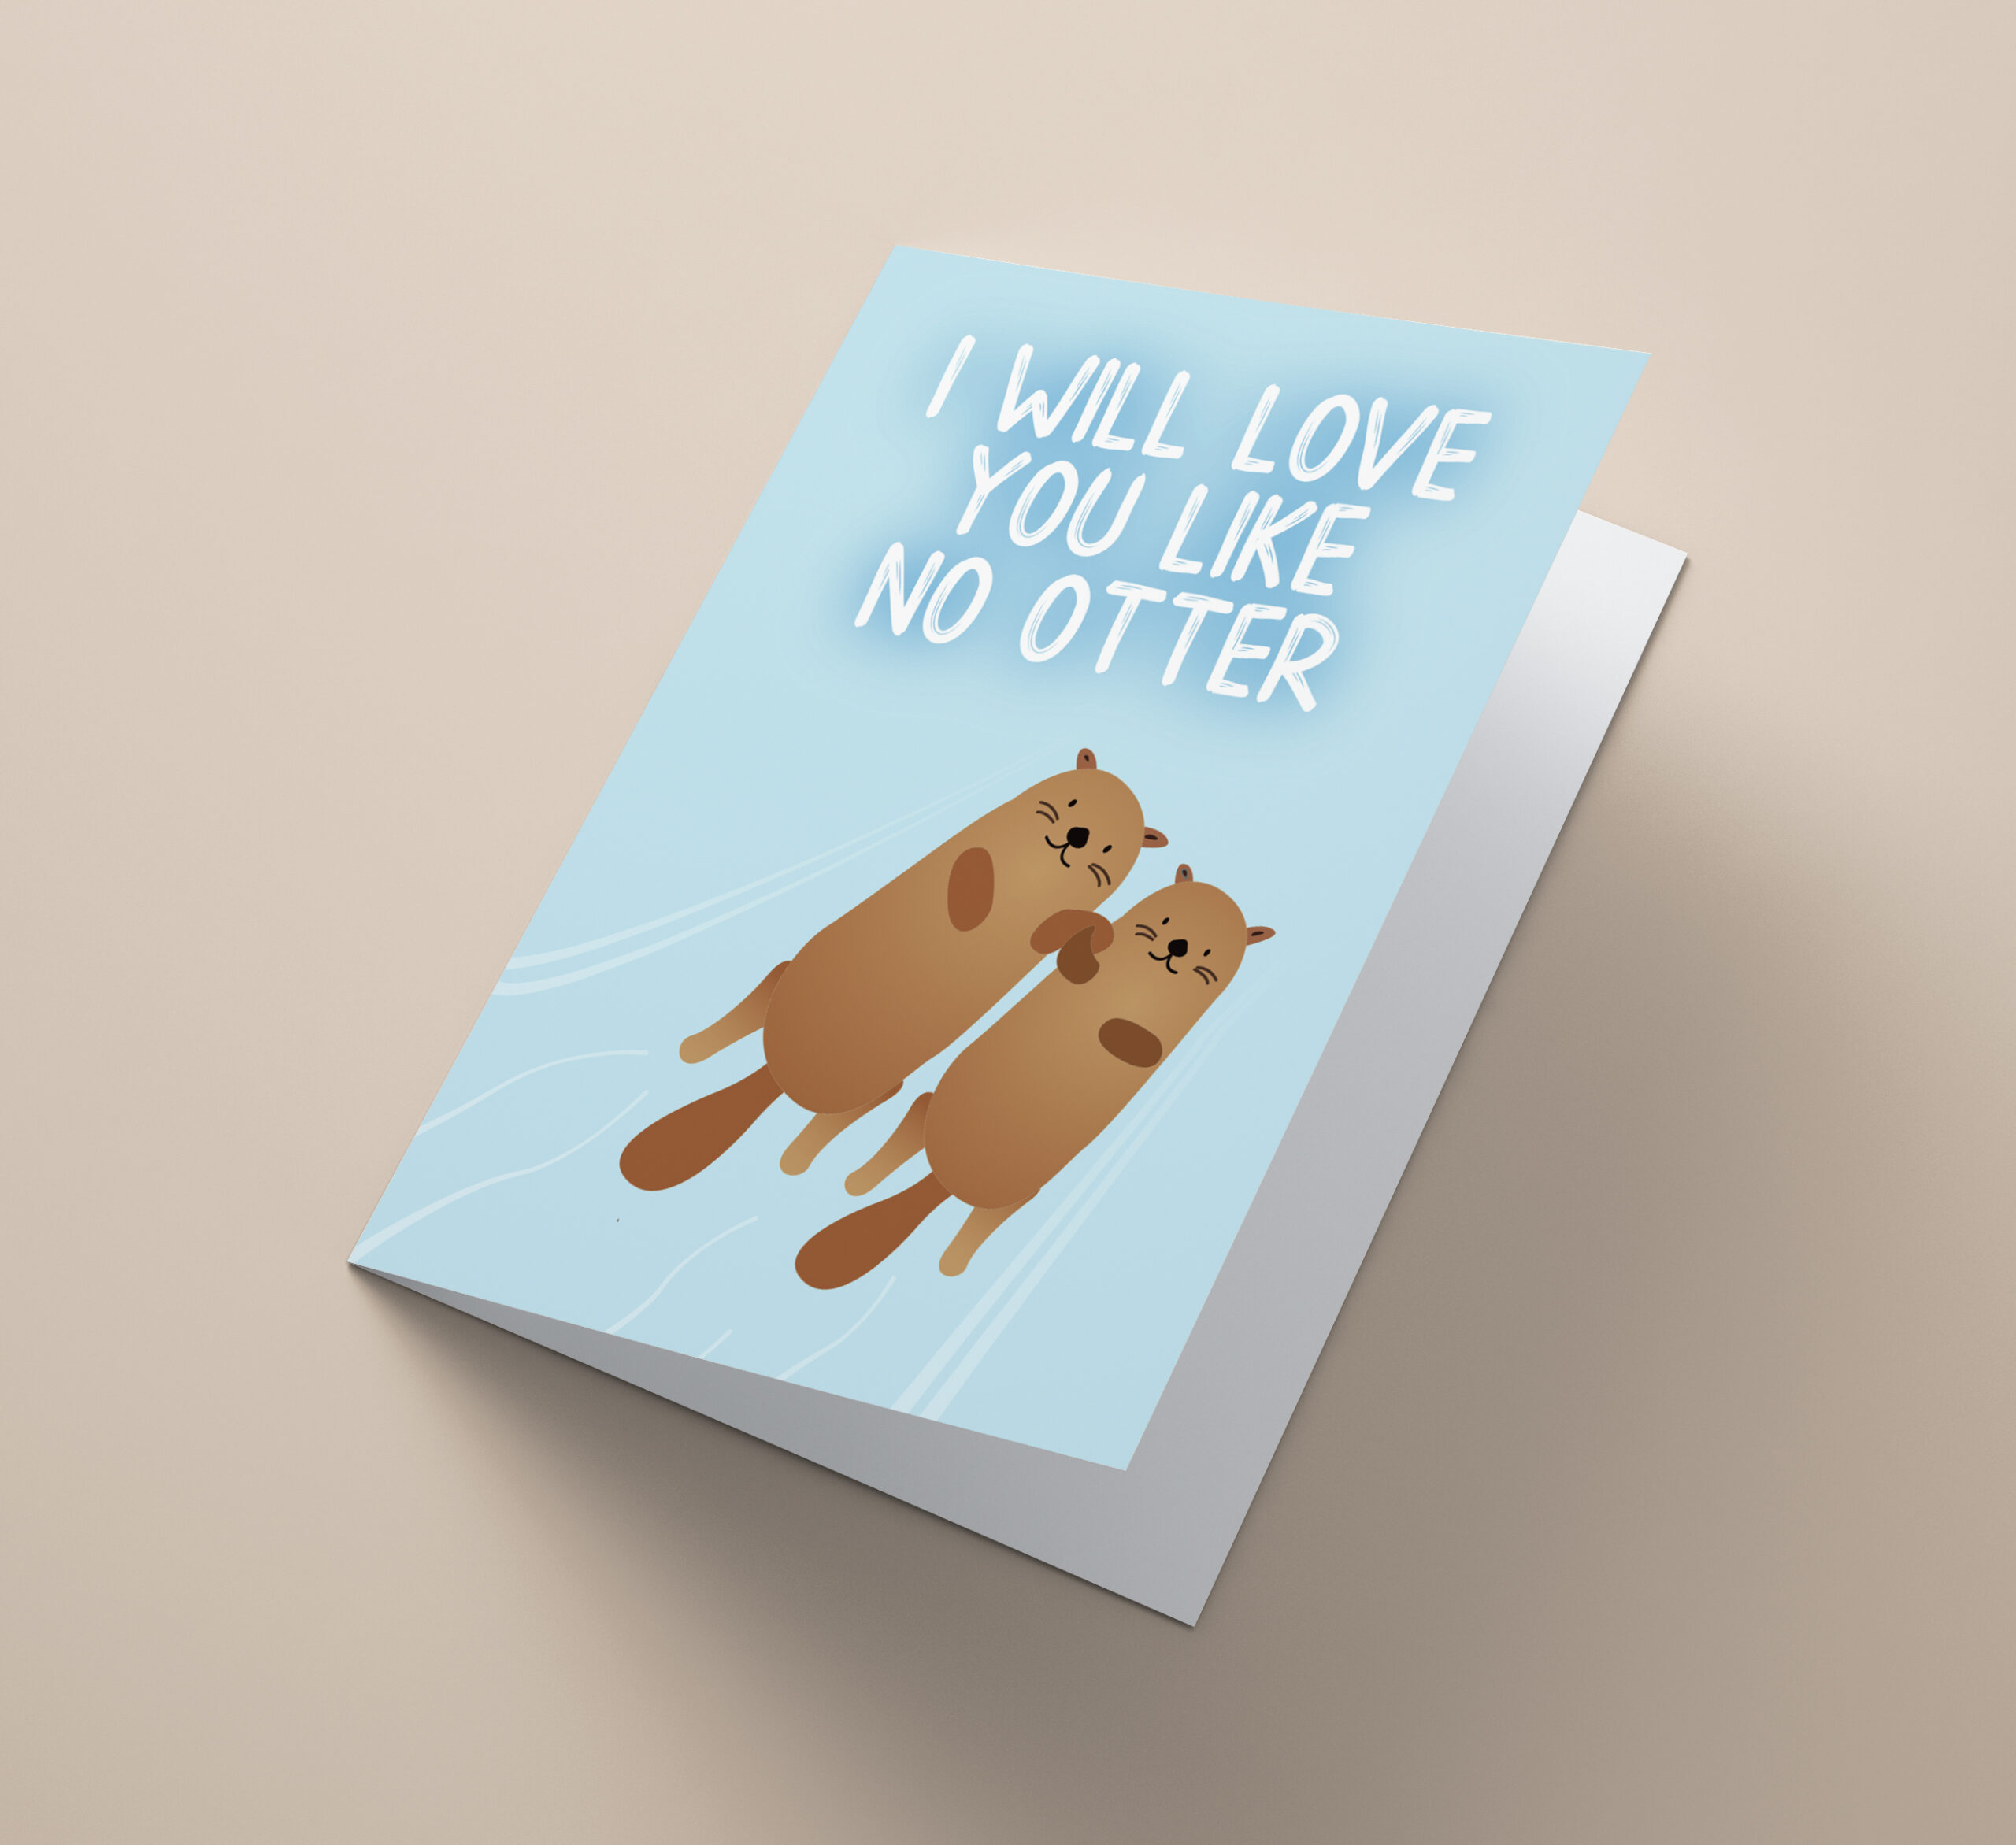 Will Love You Like No Otter